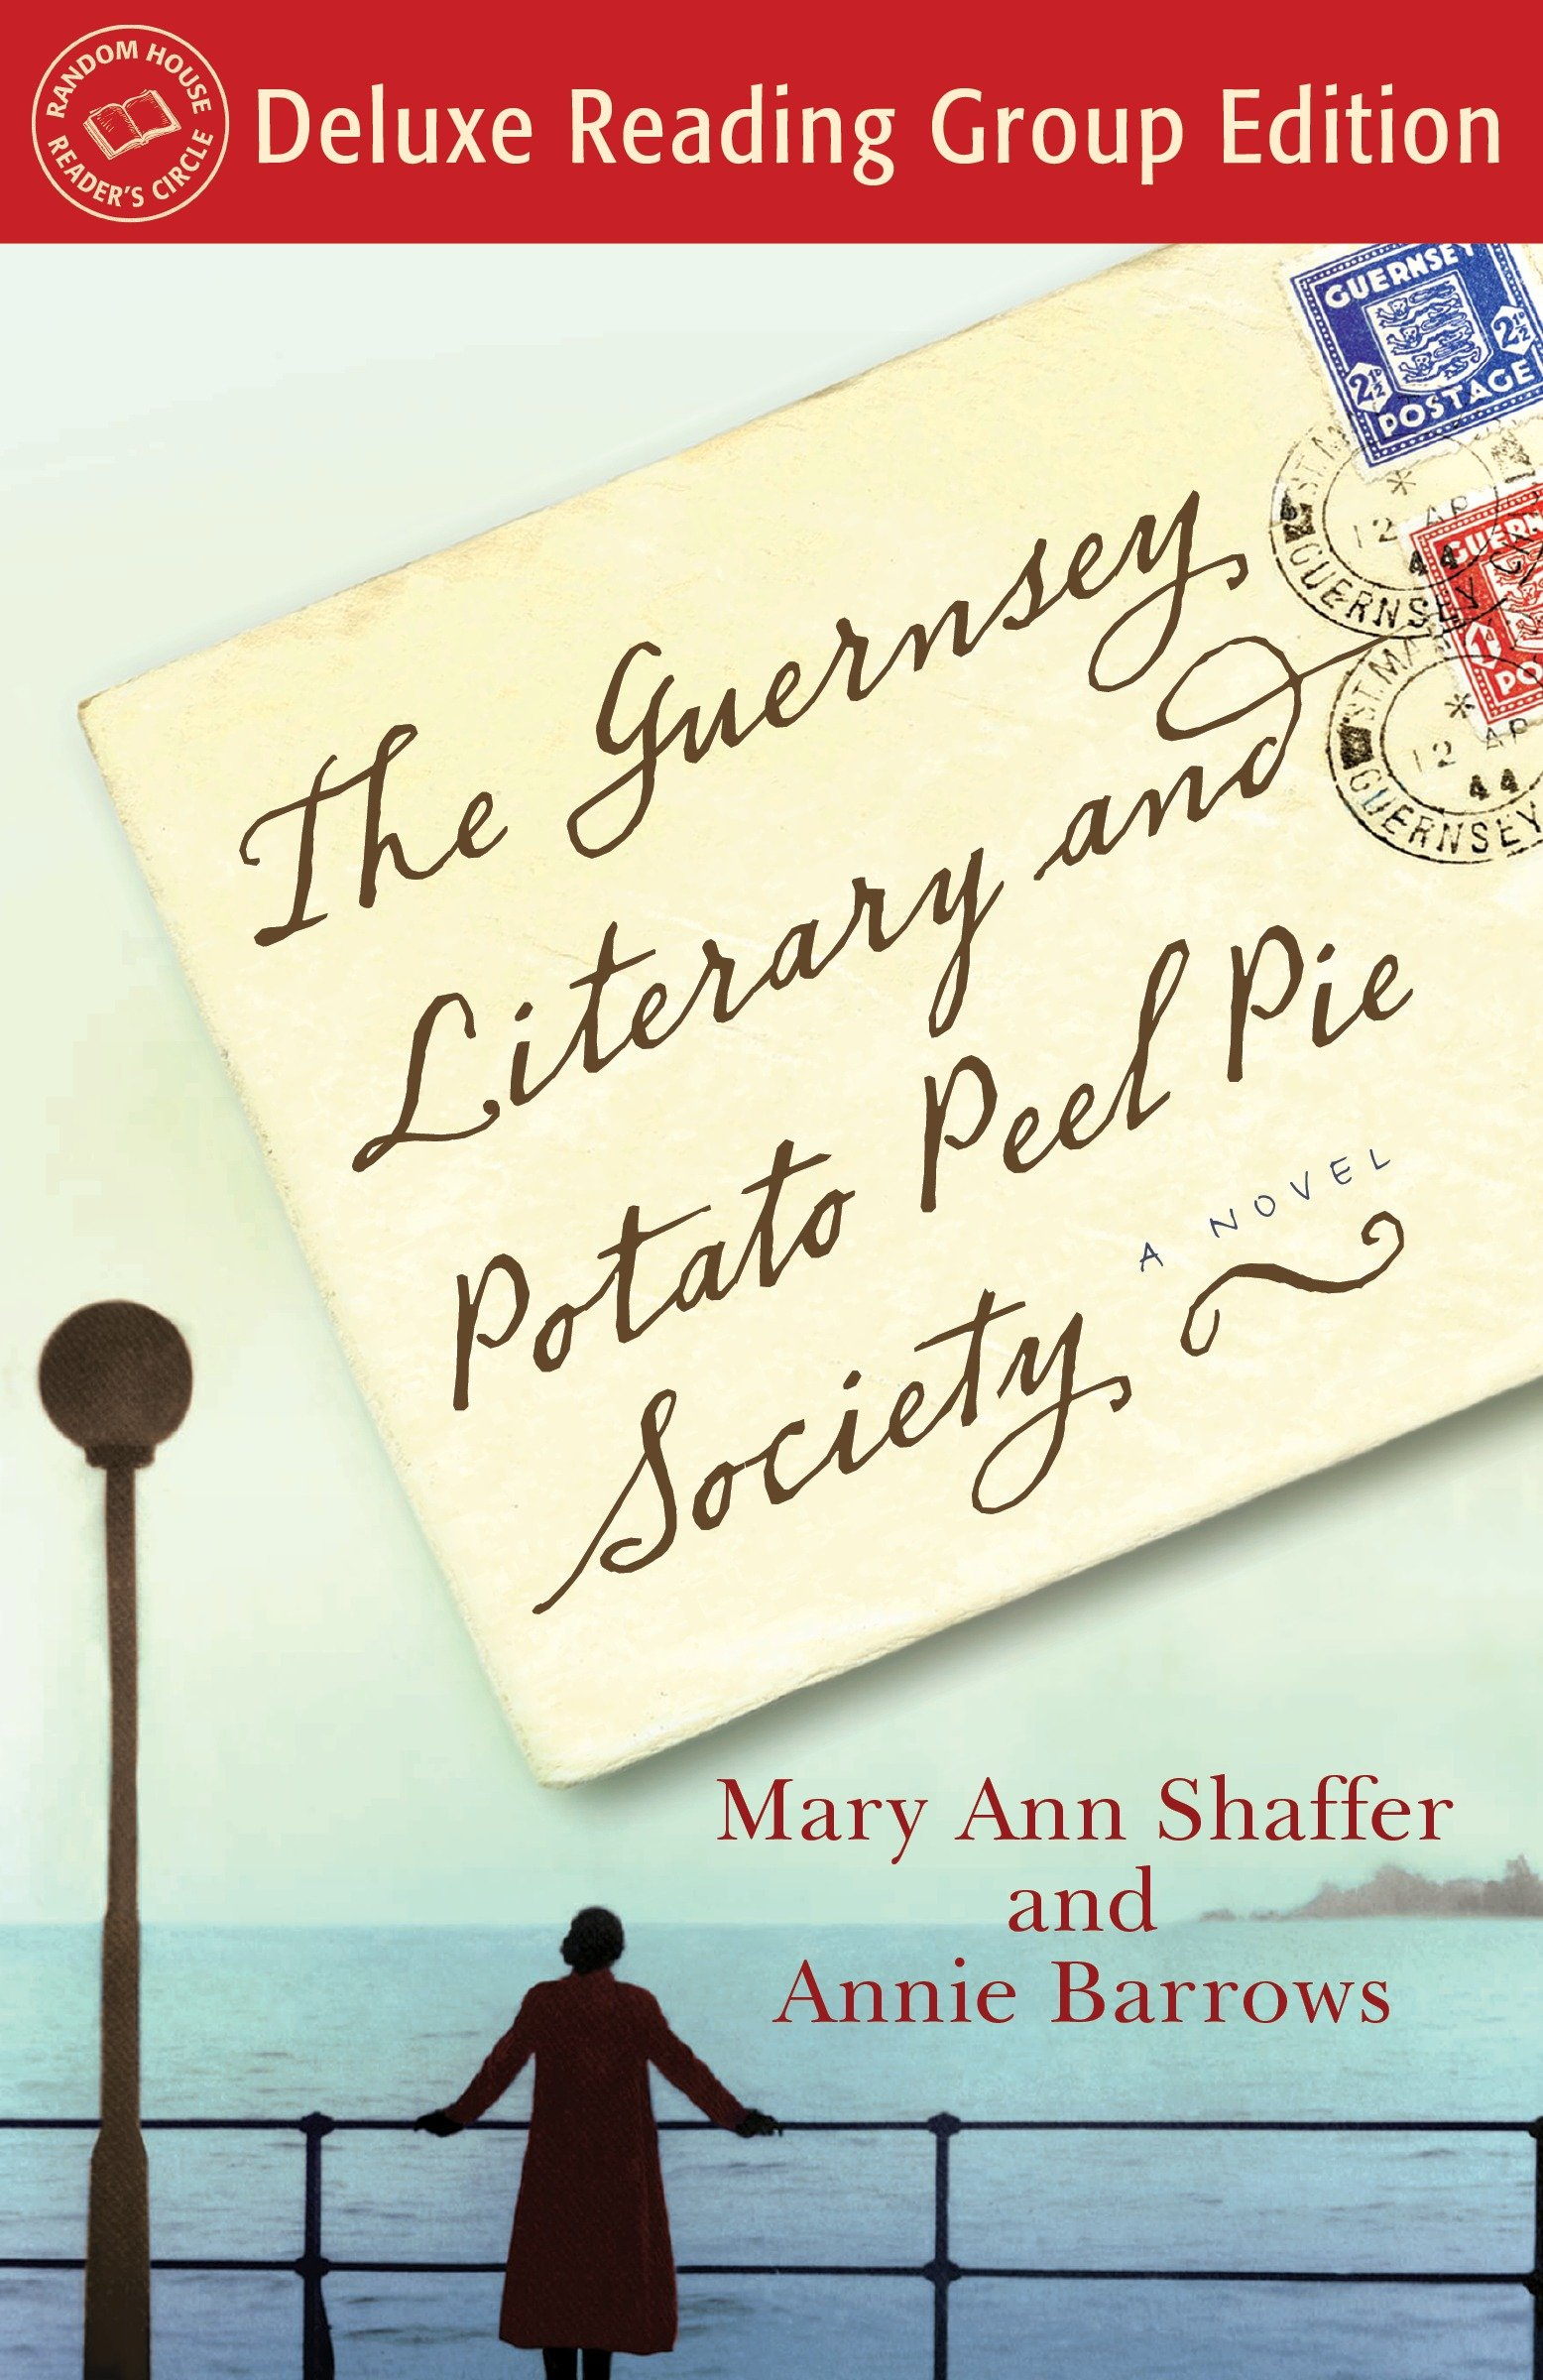 The Guernsey Literary and Potato Peel Pie Society (Random House Reader's Circle Deluxe Reading Group Edition) A Novel